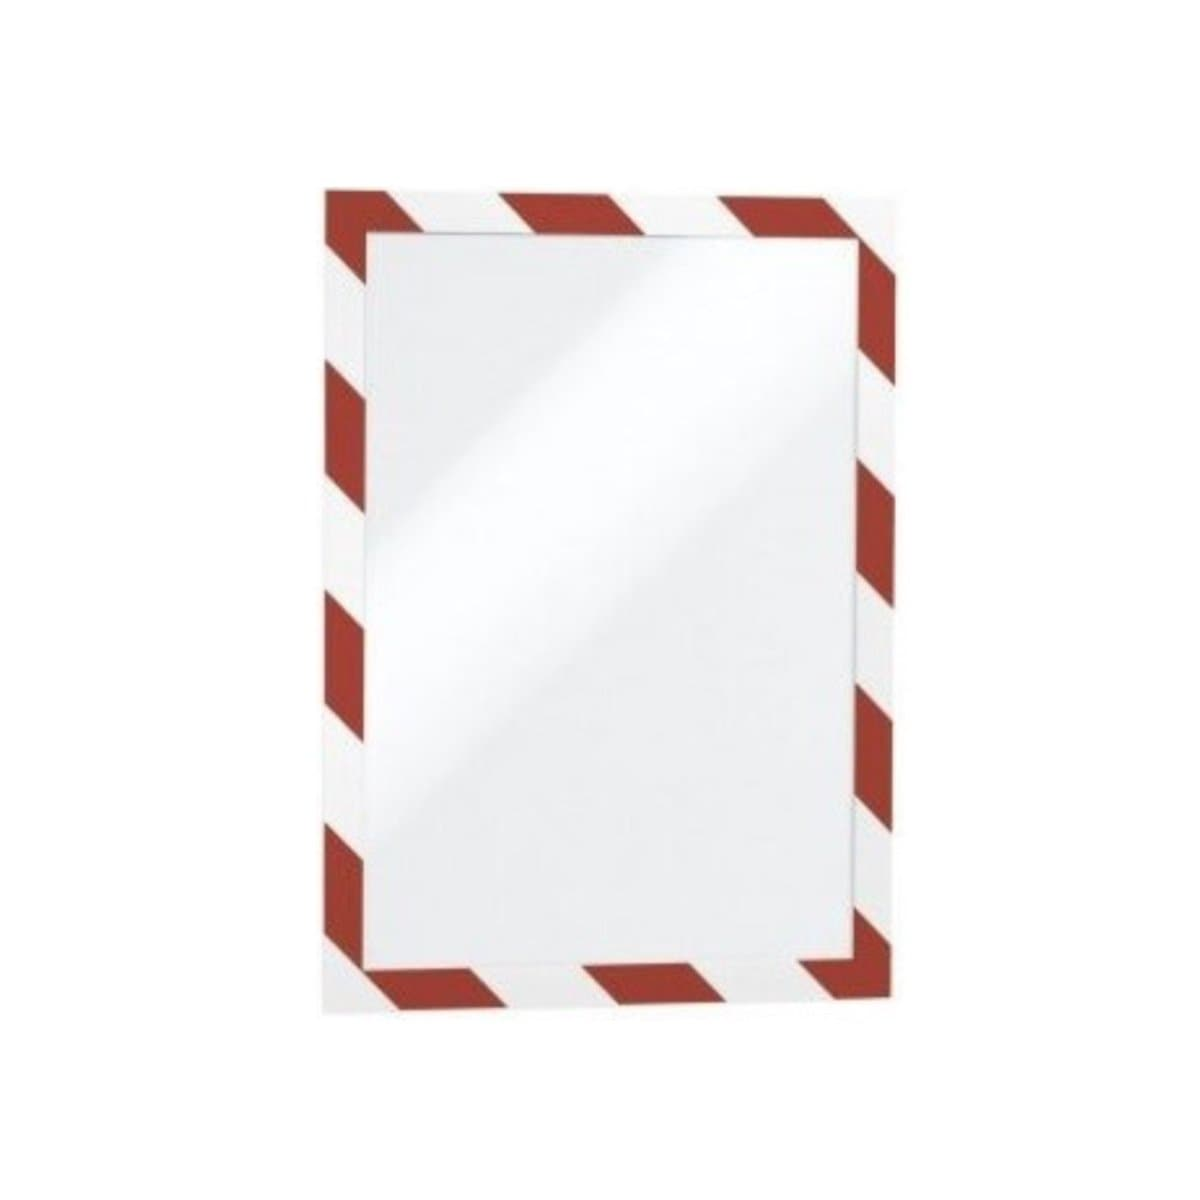 Durable DURAFRAME Security, Self-Adhesive Magnetic Frame A4, 2/pack, Red/White